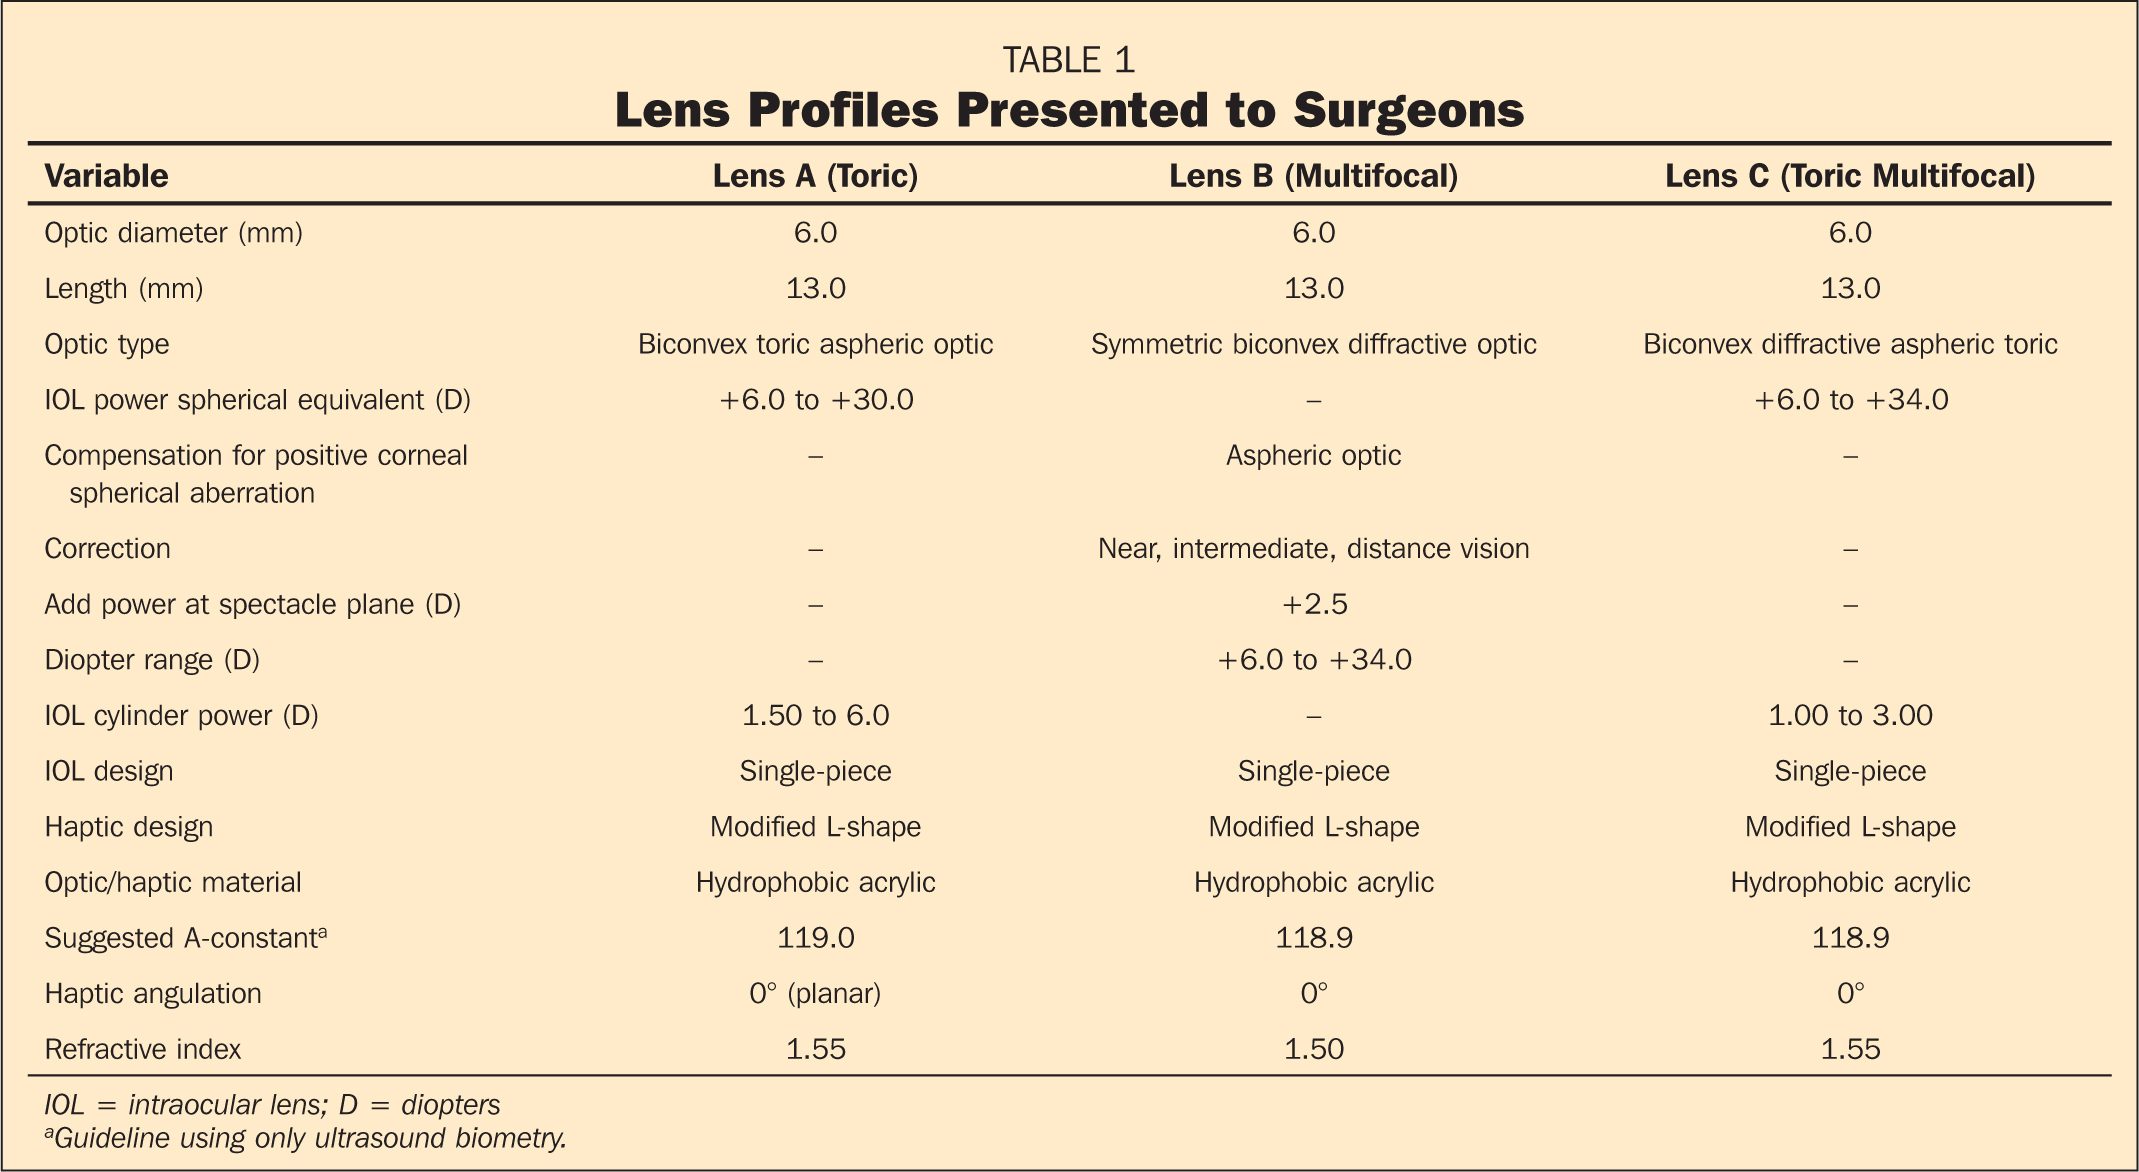 Lens Profiles Presented to Surgeons